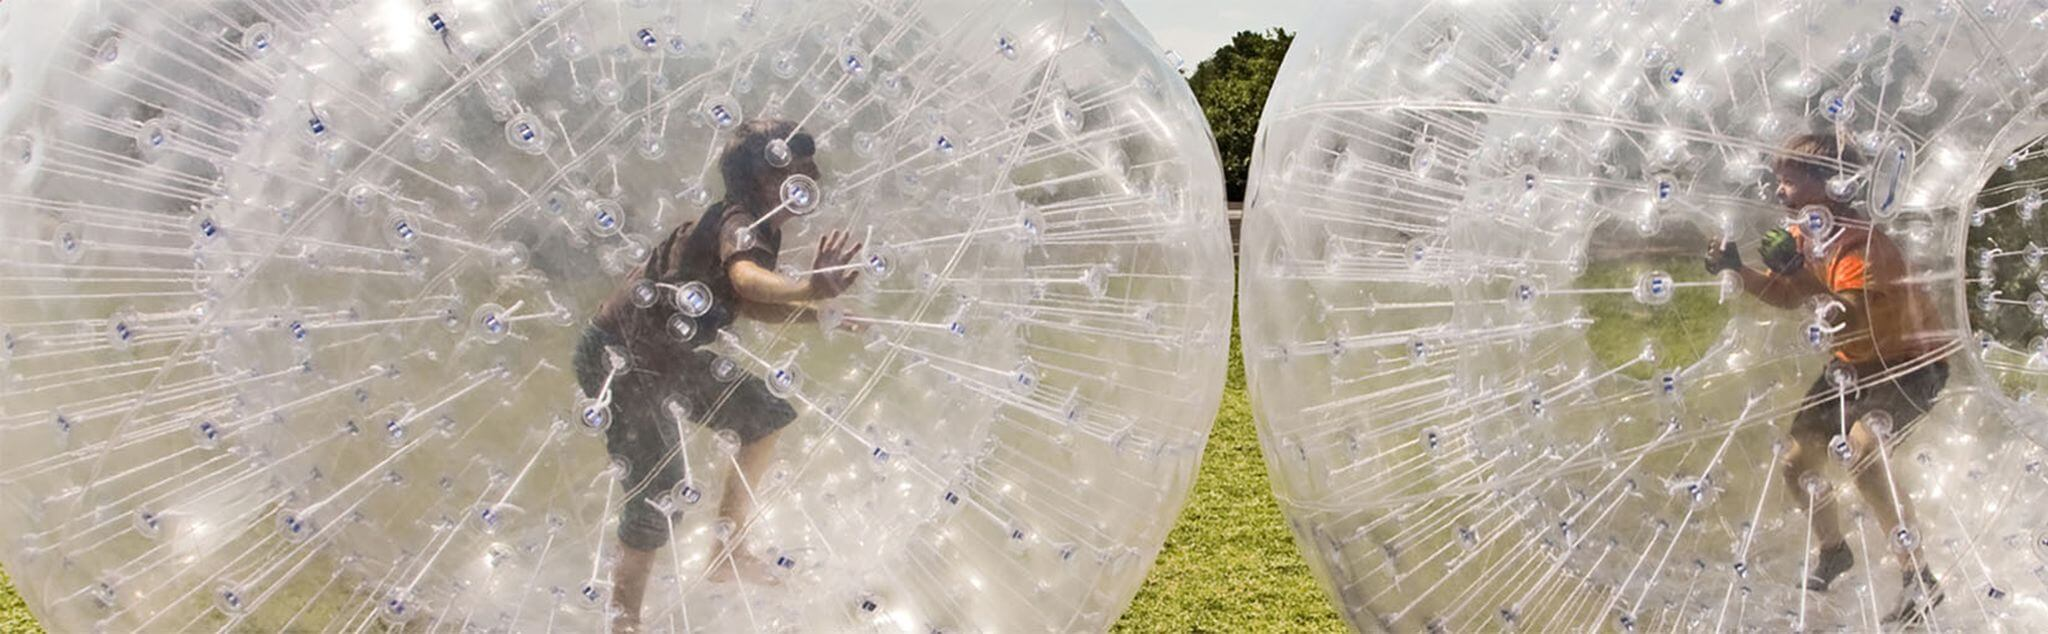 Zorbing in Gelves